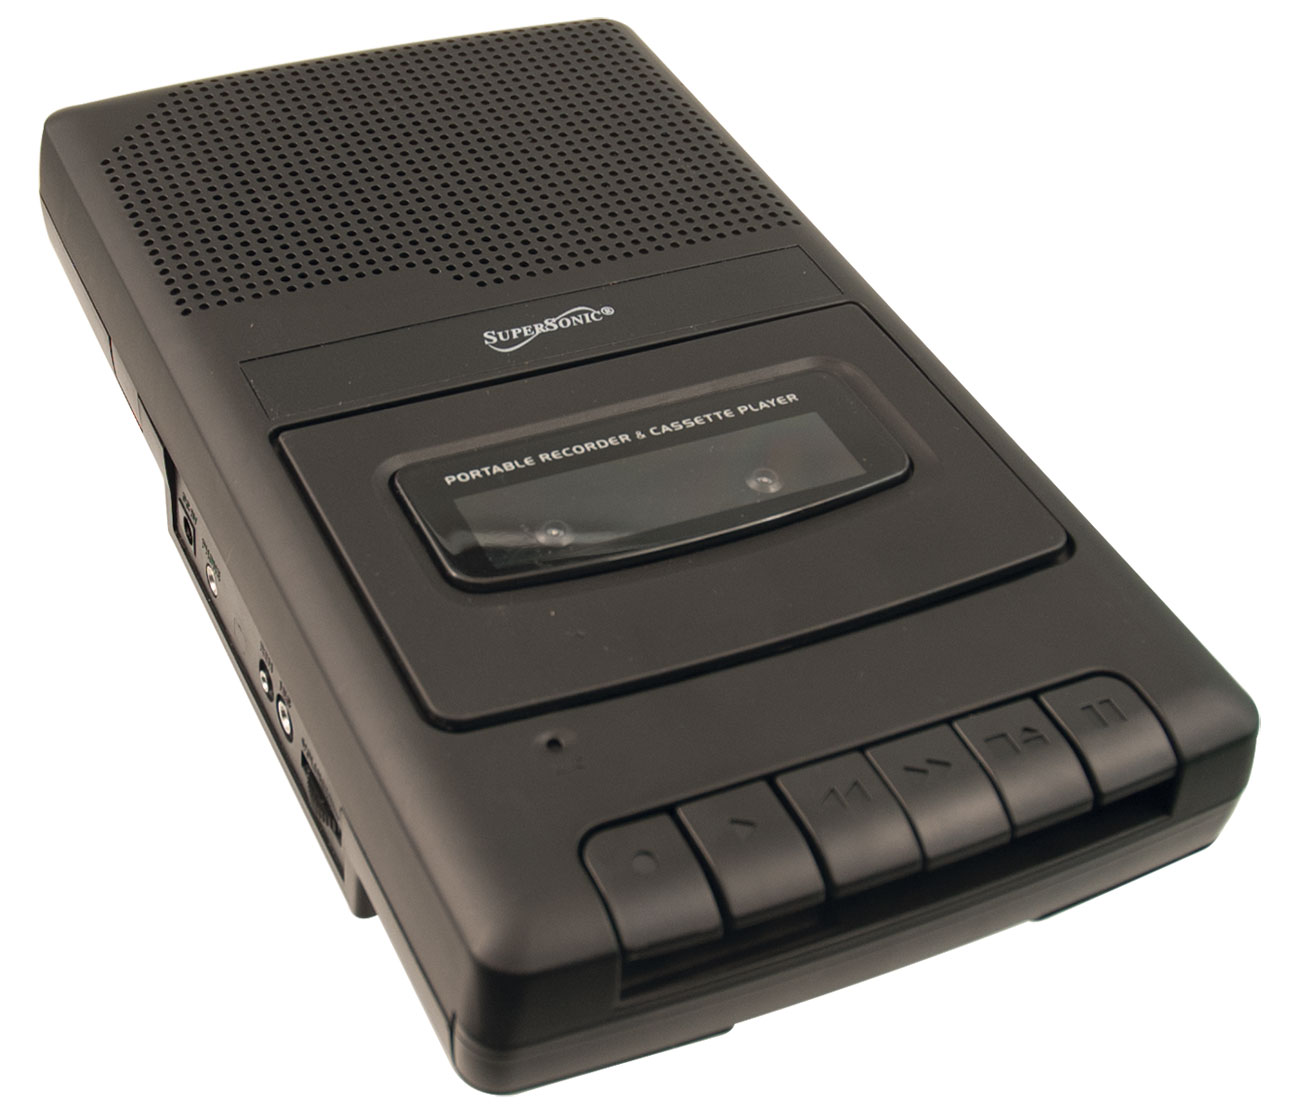 RCA Cassette Recorder and Player -AC-DC Price: $32.95